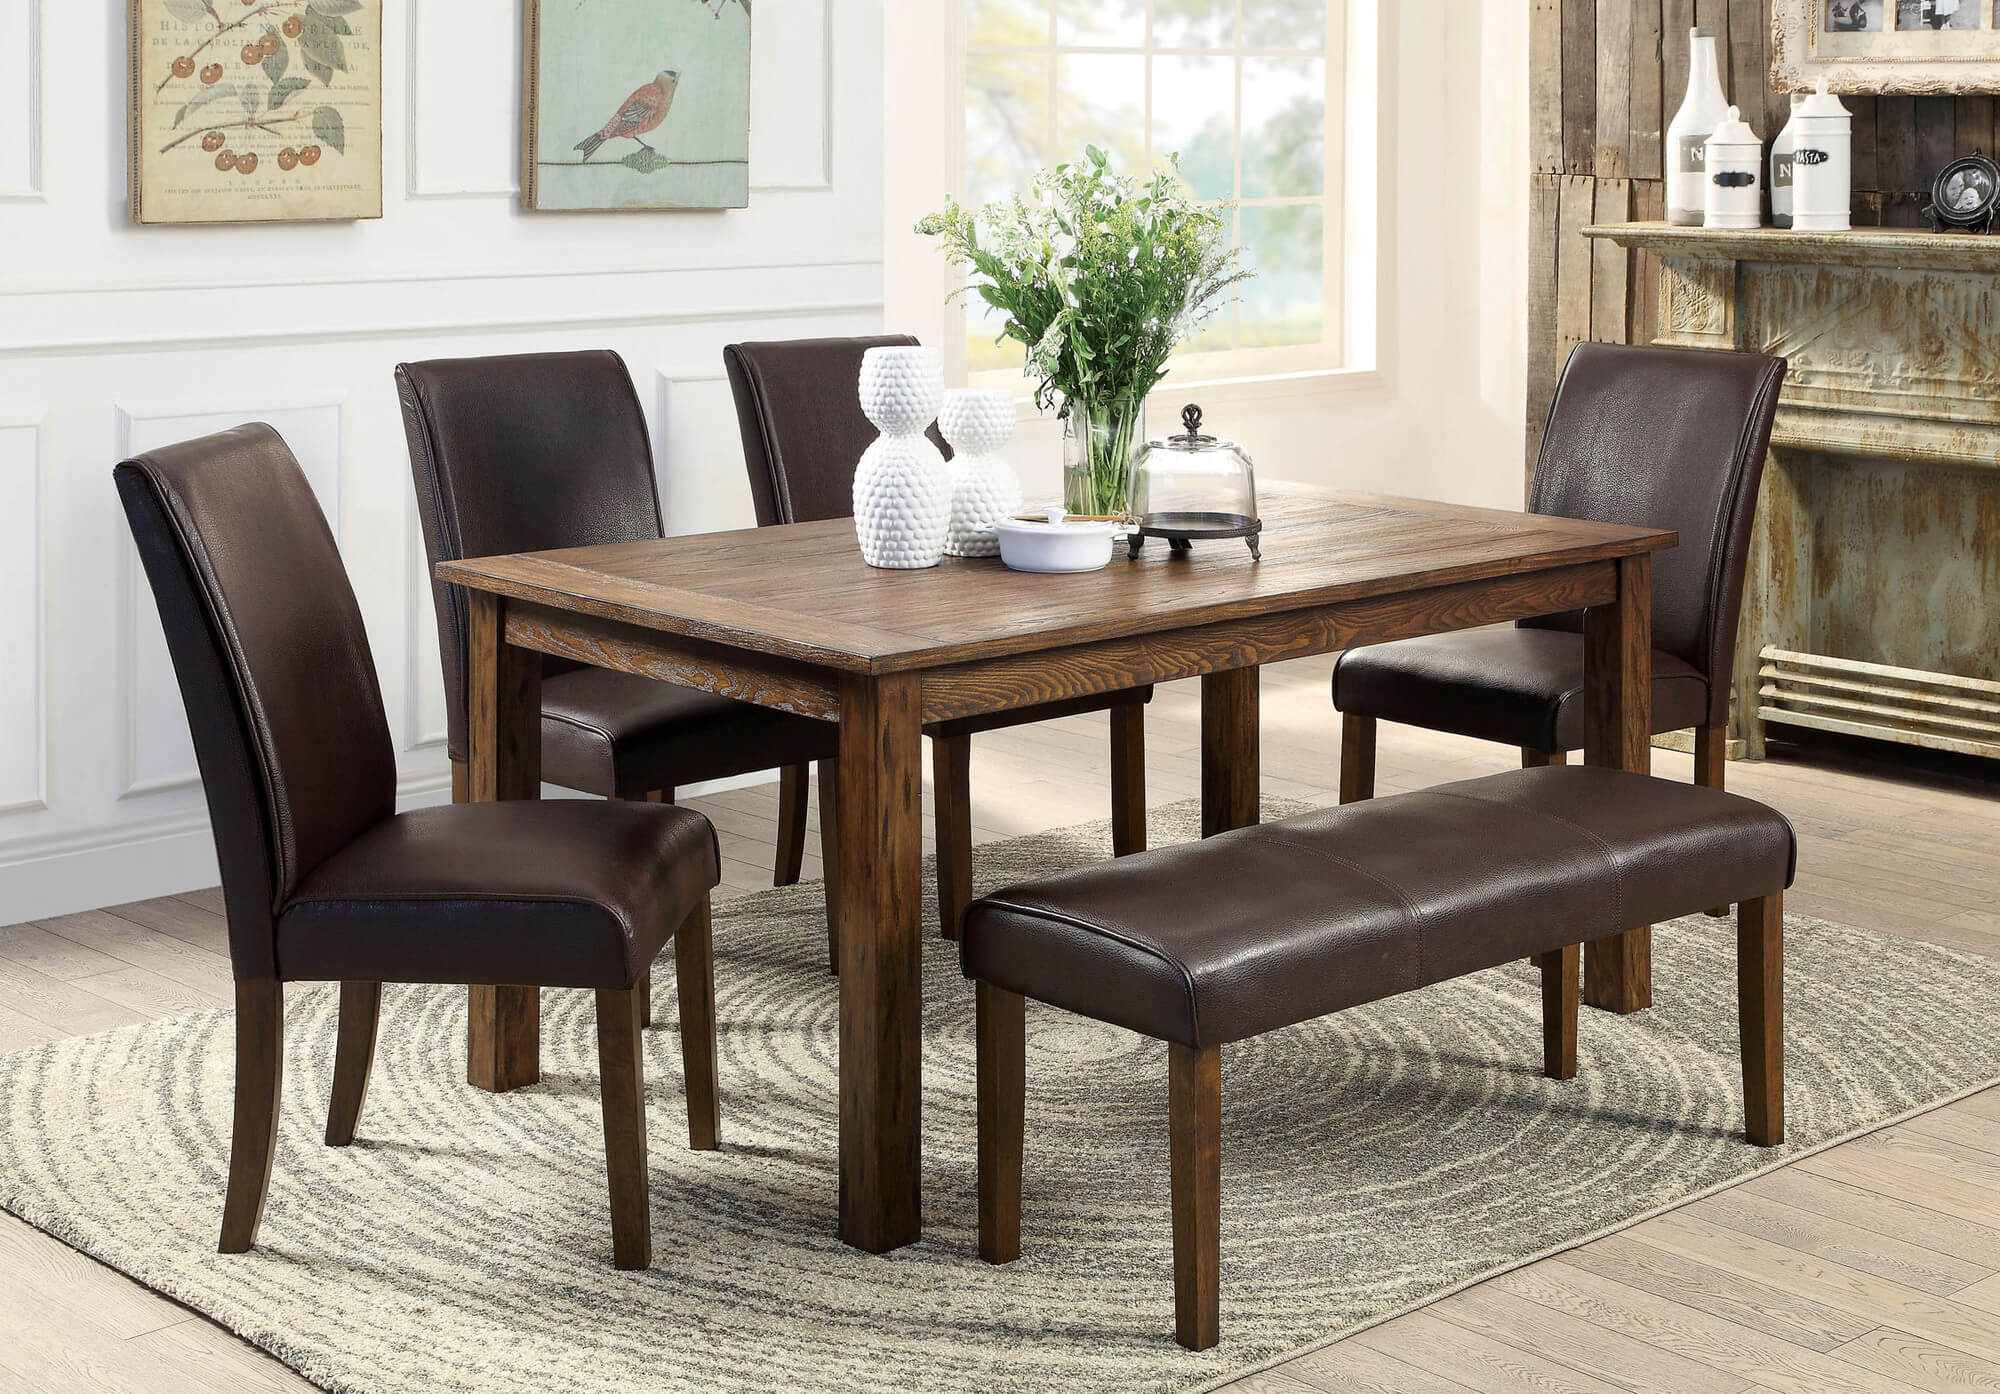 Here's a rustic rectangle dining table with fully cushioned chairs and bench. This look works beautifully in homes with a rustic, country or craftsman design. I particularly like the fully cushioned chairs and solid table design.